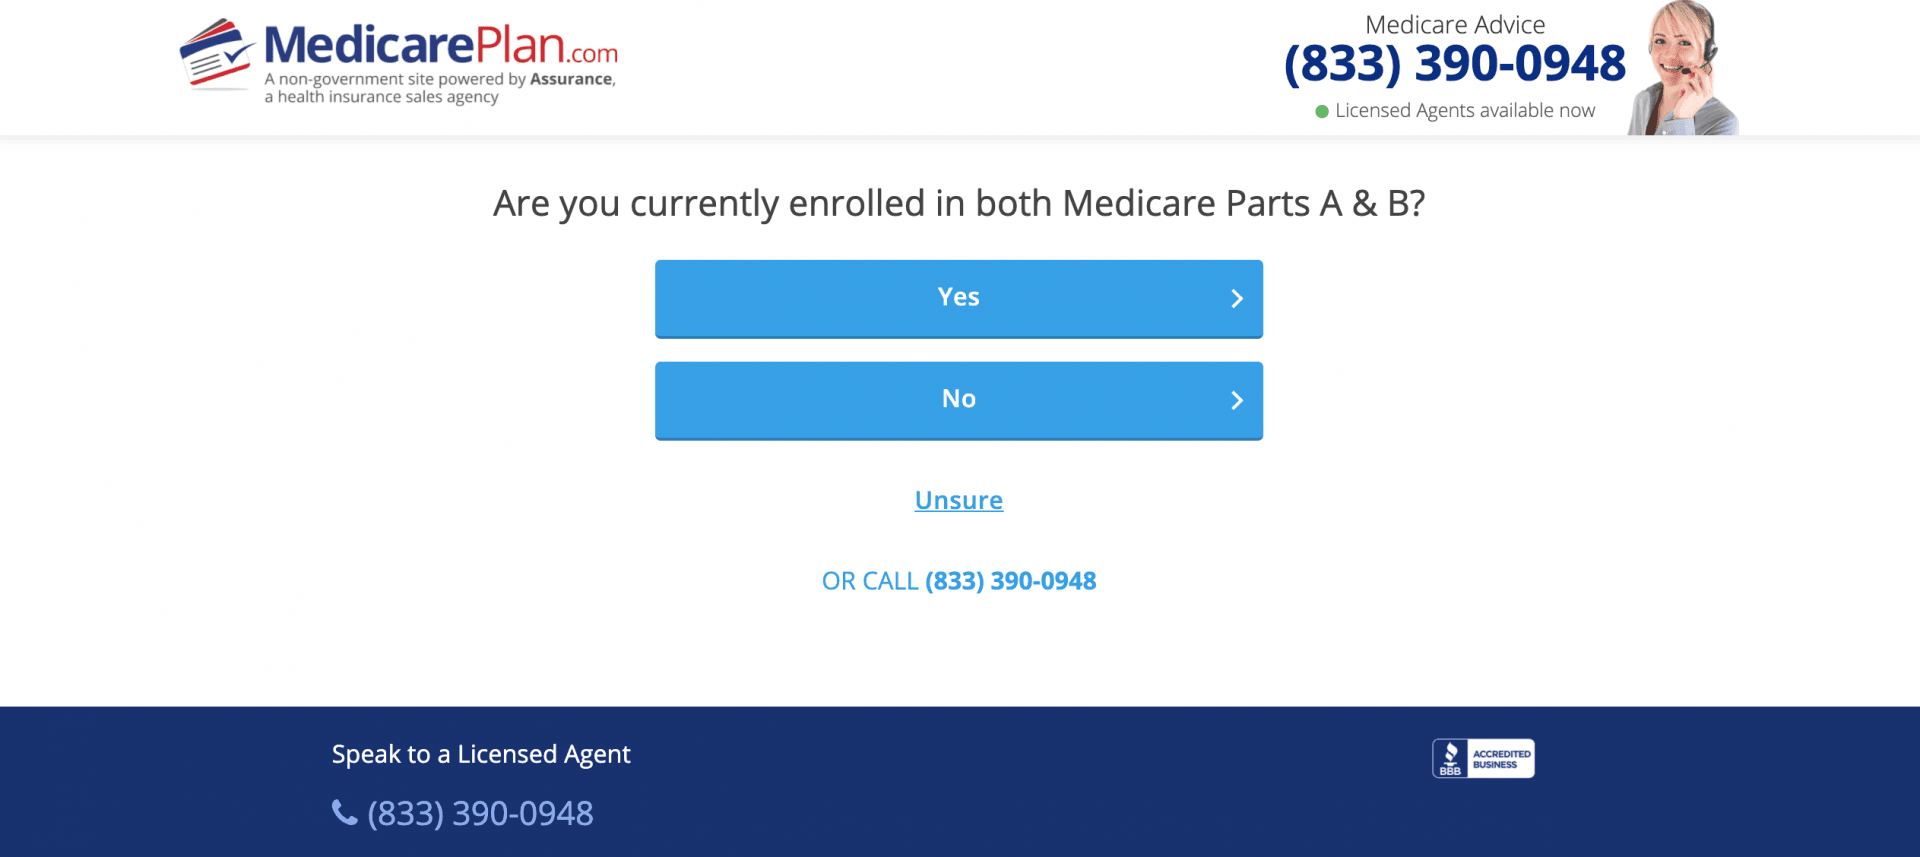 MedicarePlan.com Review: We Help You Find Medicare Coverage The Easy Way - Are You Enrolled?